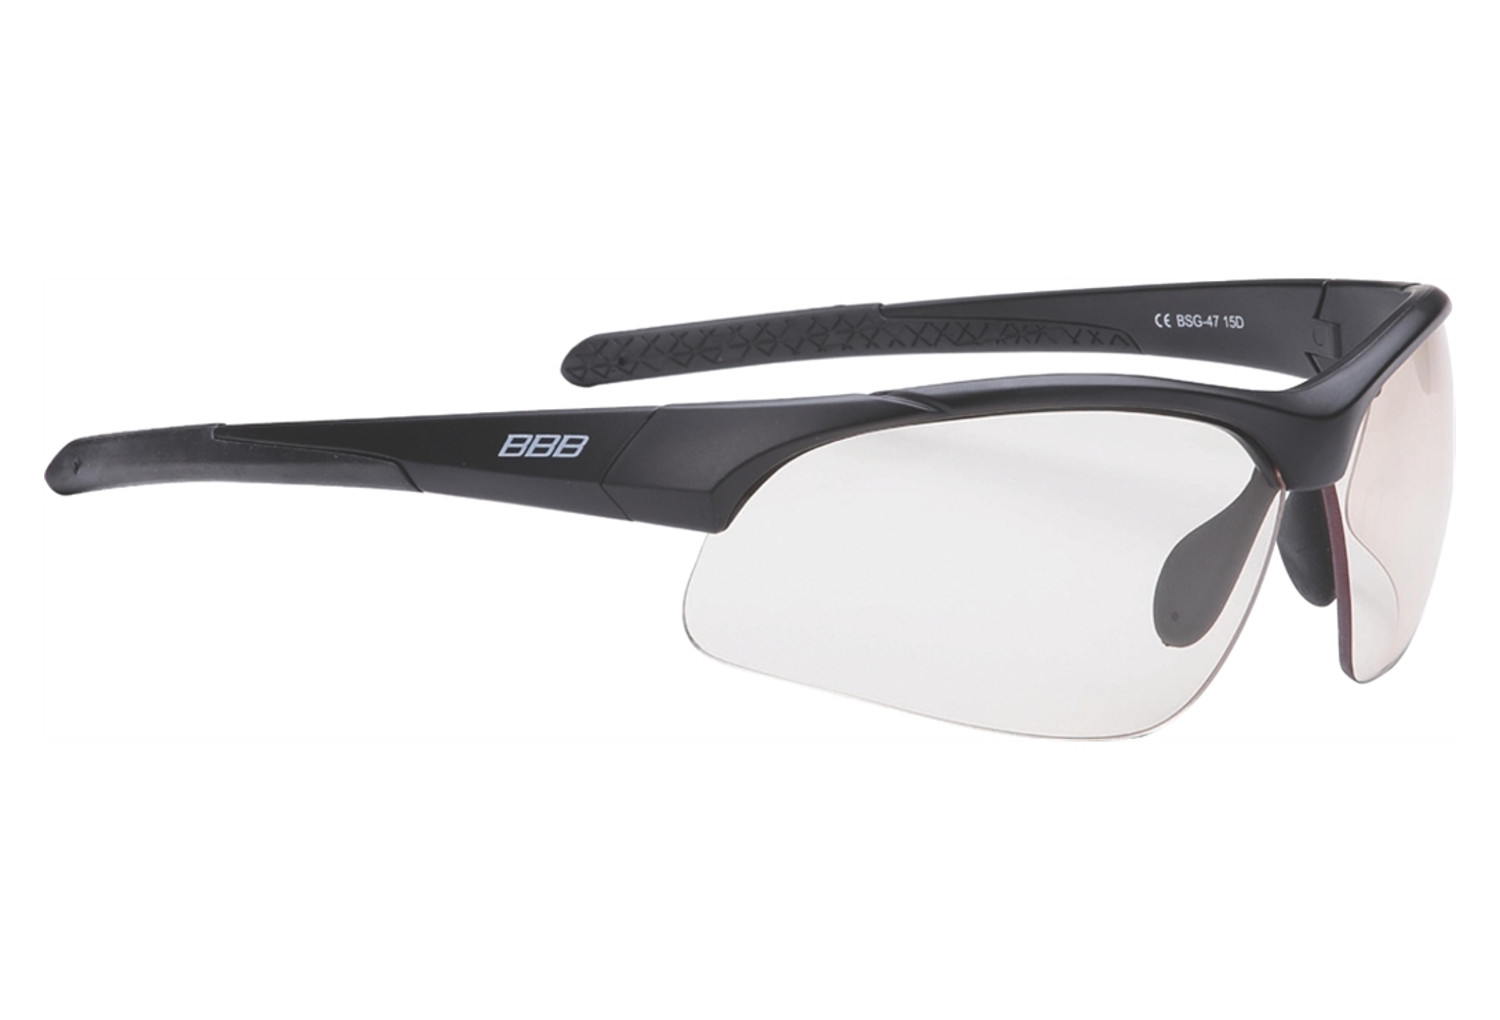 efe3cc81dc72 Bbb Photochromic Sunglasses Review « Heritage Malta